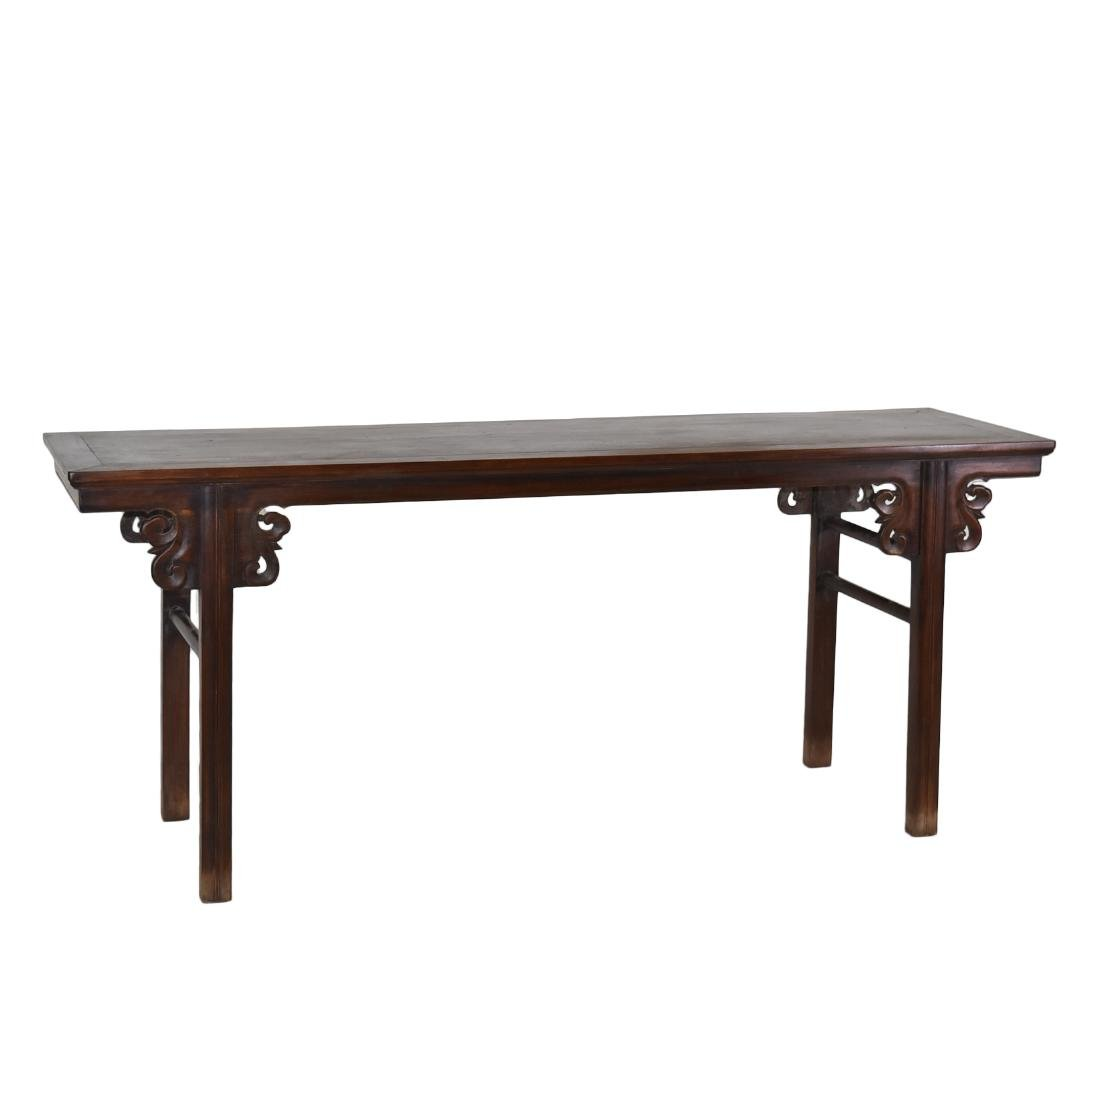 17/18TH QING HUANGHUALI ALTAR TABLE IN FLORAL MOTIF